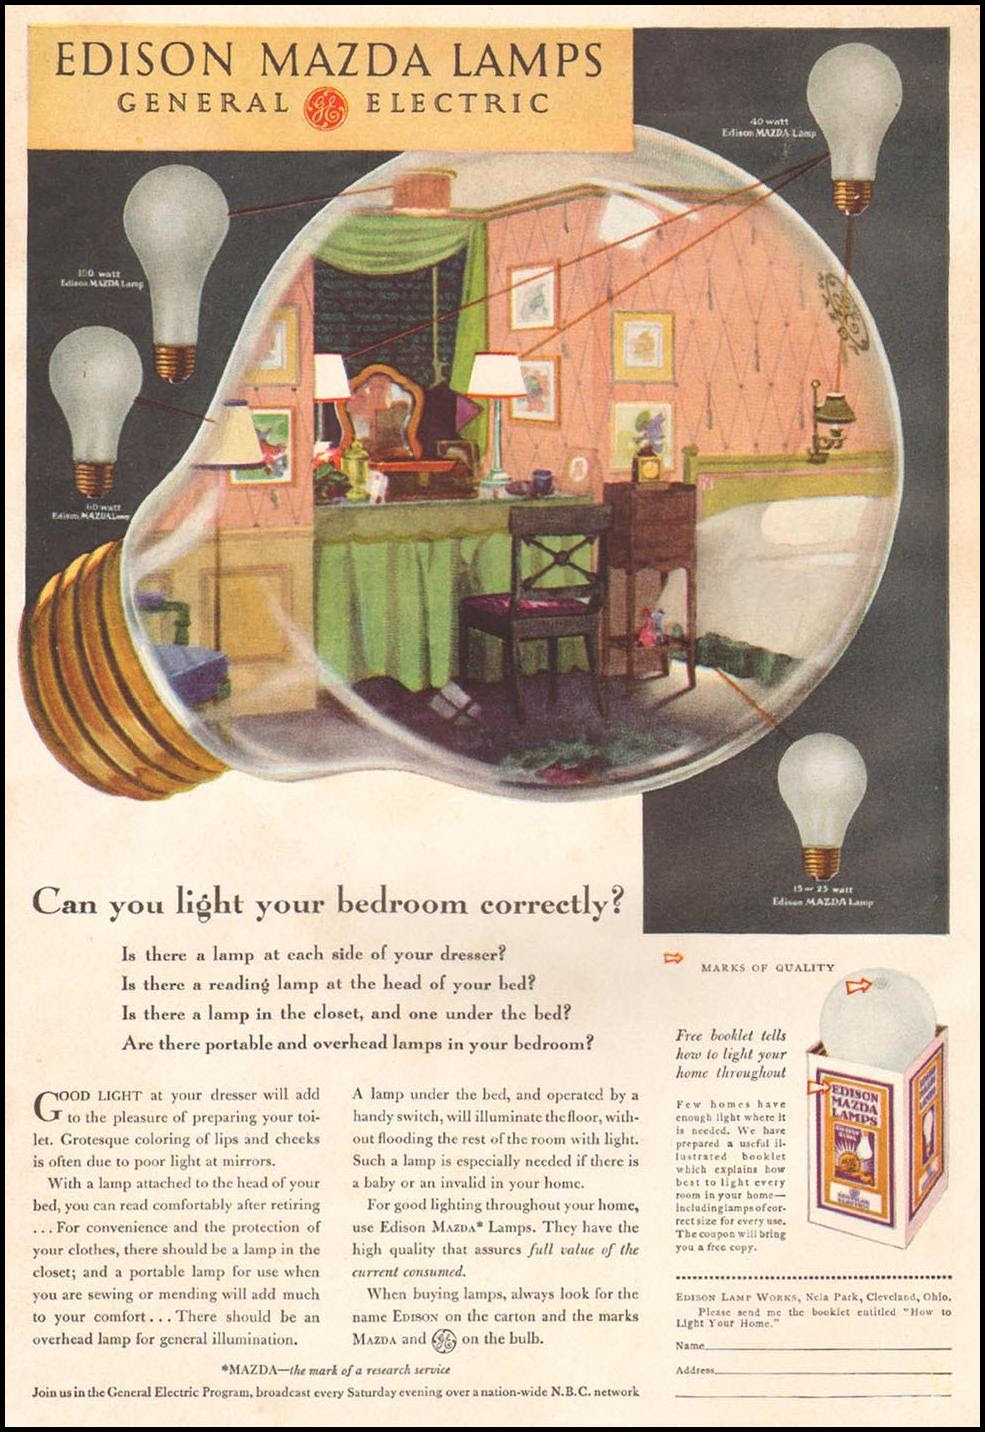 EDISON MAZDA LAMPS BETTER HOMES AND GARDENS 04/01/1931 INSIDE FRONT